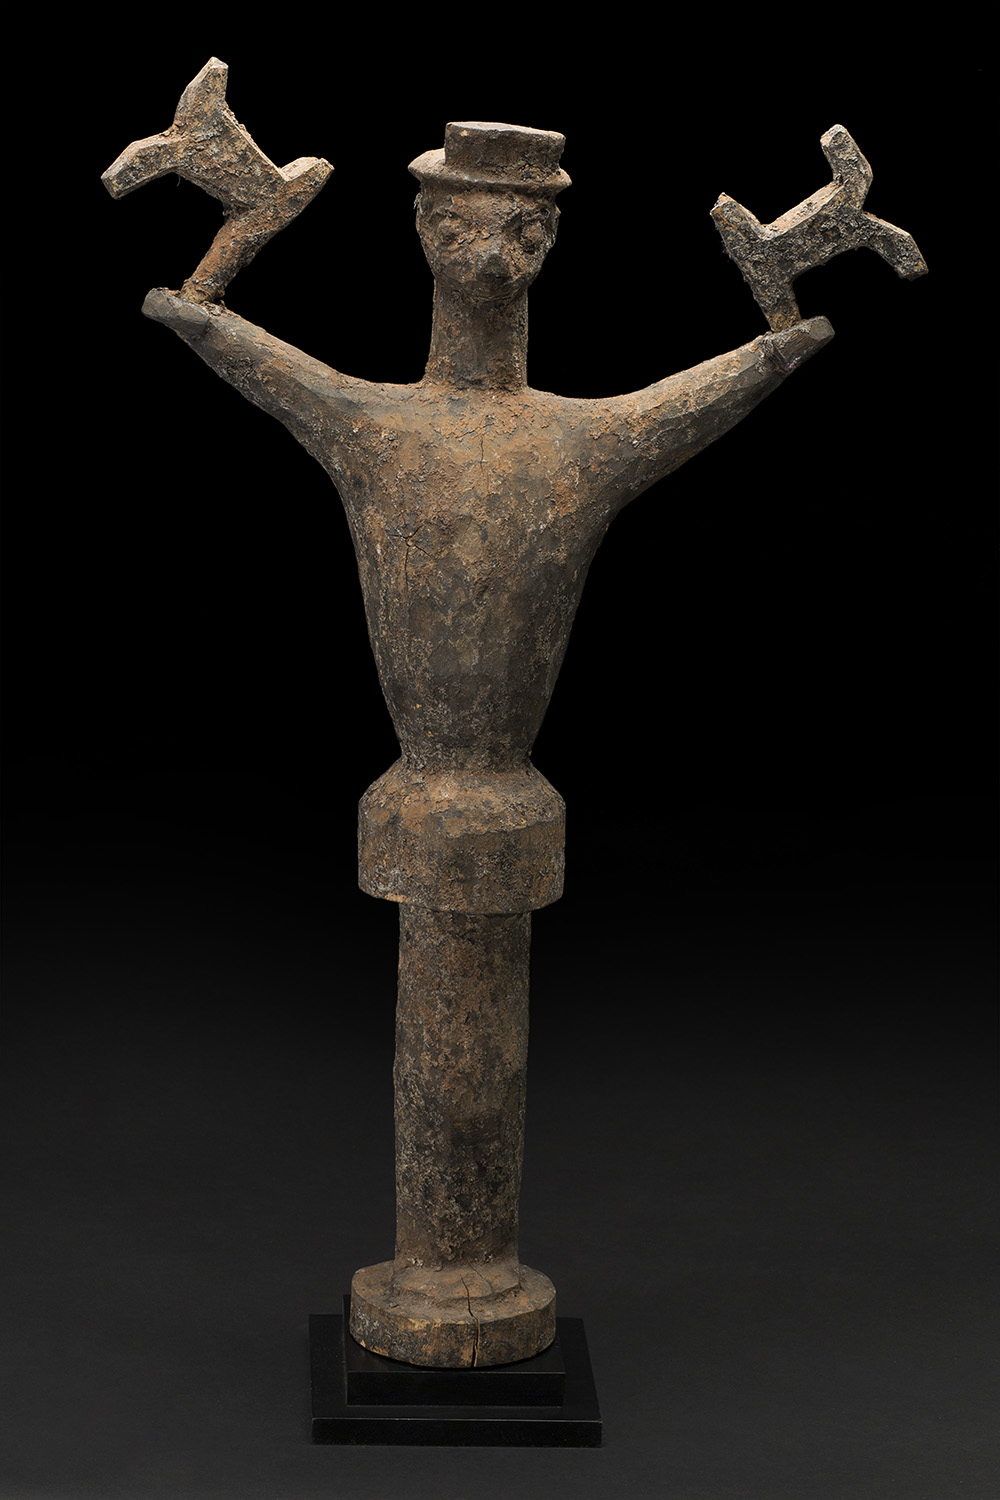 Africa    Hevioso Figure - Vodun Sculpture - Fon People - Benin  , Mid. 20th C. Wood 29.5 x 15 x 6 inches 74.9 x 38.1 x 15.2 cm Af 300